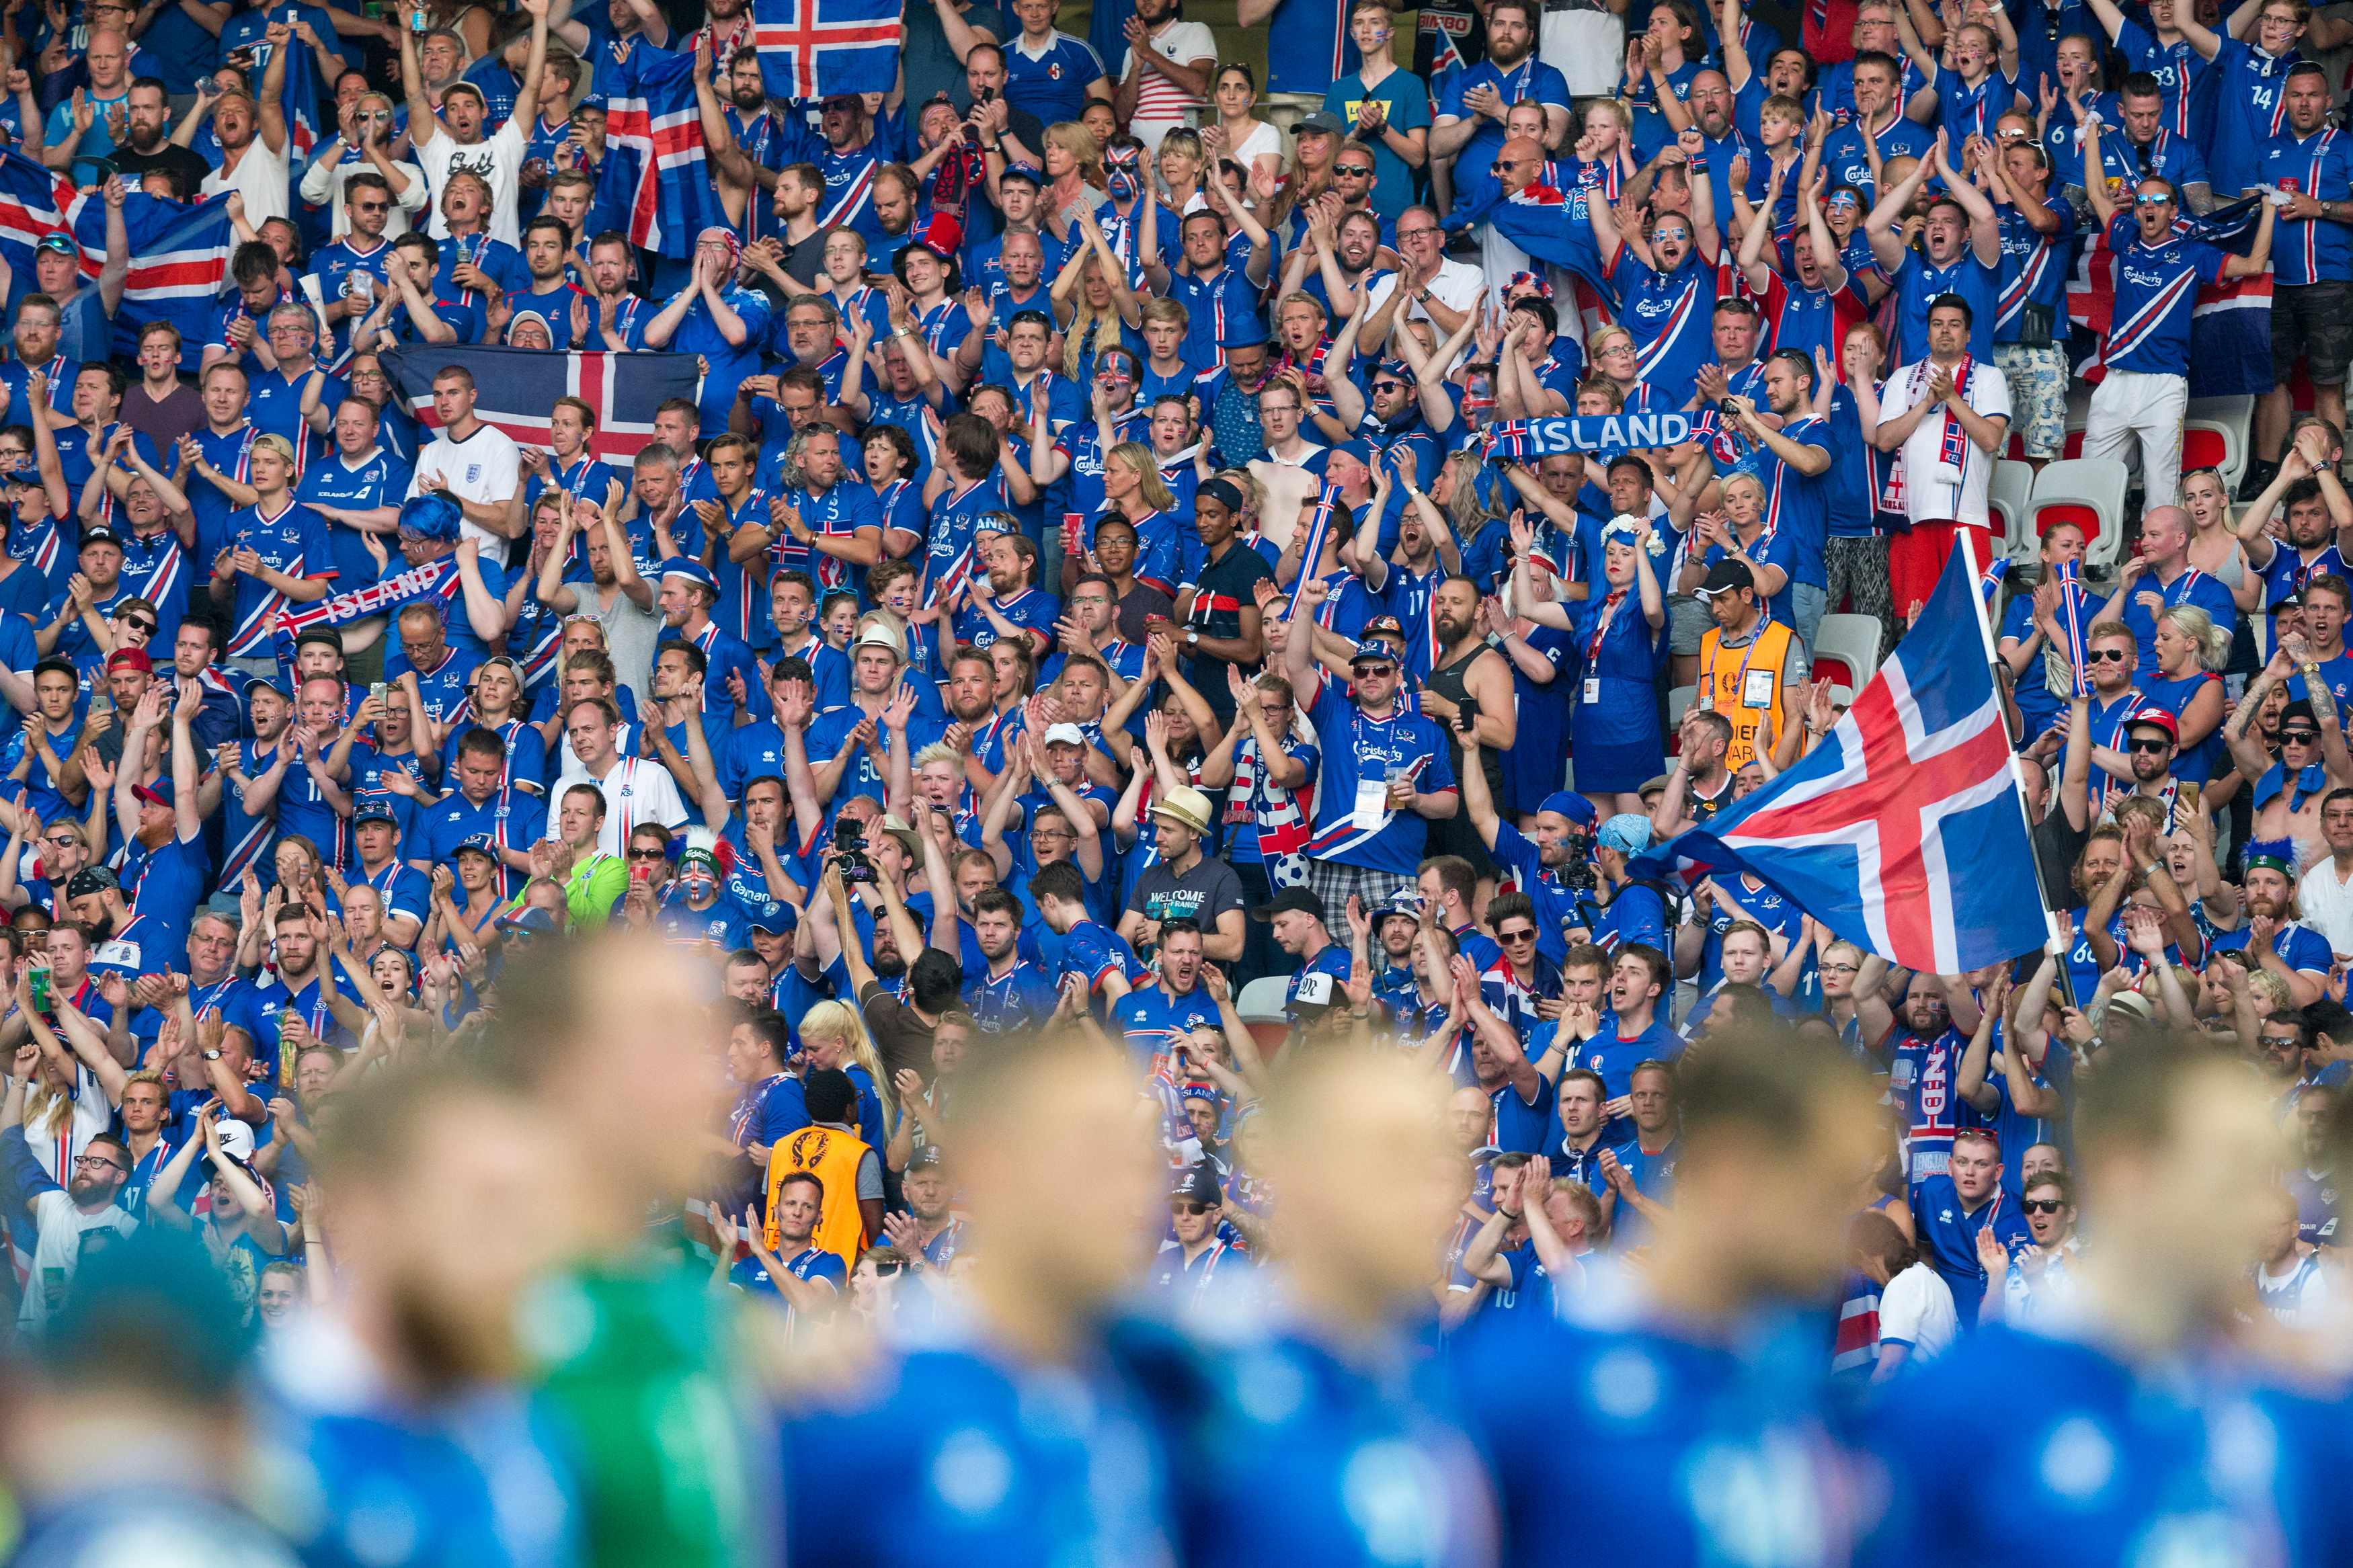 NICE, FRANCE - JUNE 25:  Iceland fans during their side's national anthem during the UEFA Euro 2016 Round of 16 match between England and Iceland at Allianz Riviera Stadium on June 27 in Nice, France.  (Photo by Craig Mercer/CameraSport via Getty Images)